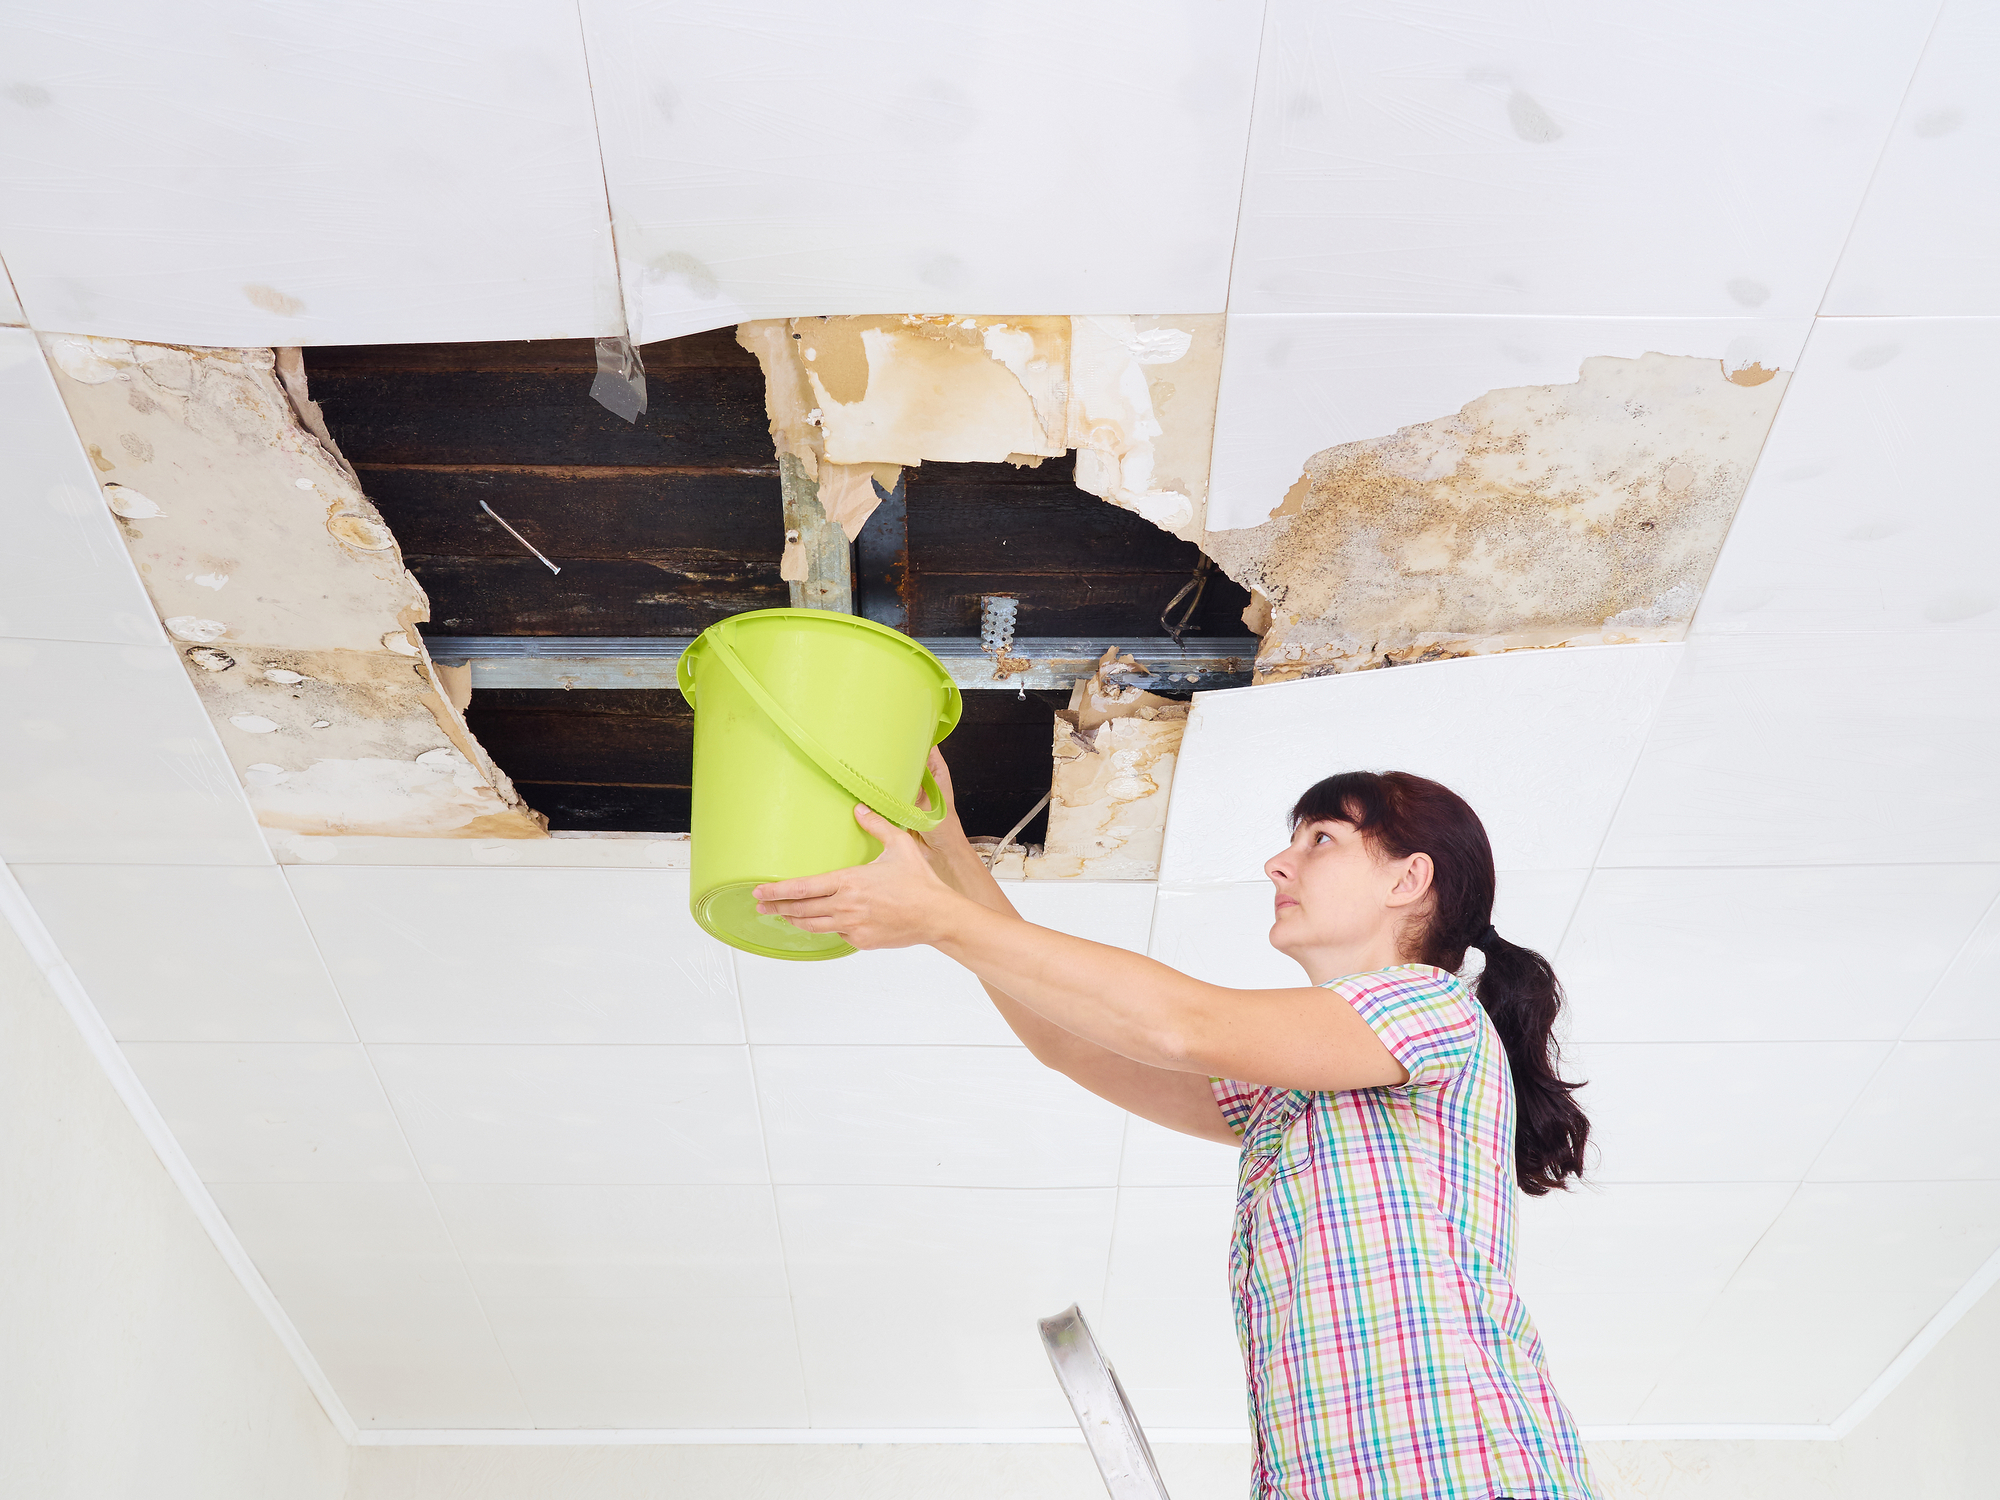 Young woman collecting water from a damaged ceiling